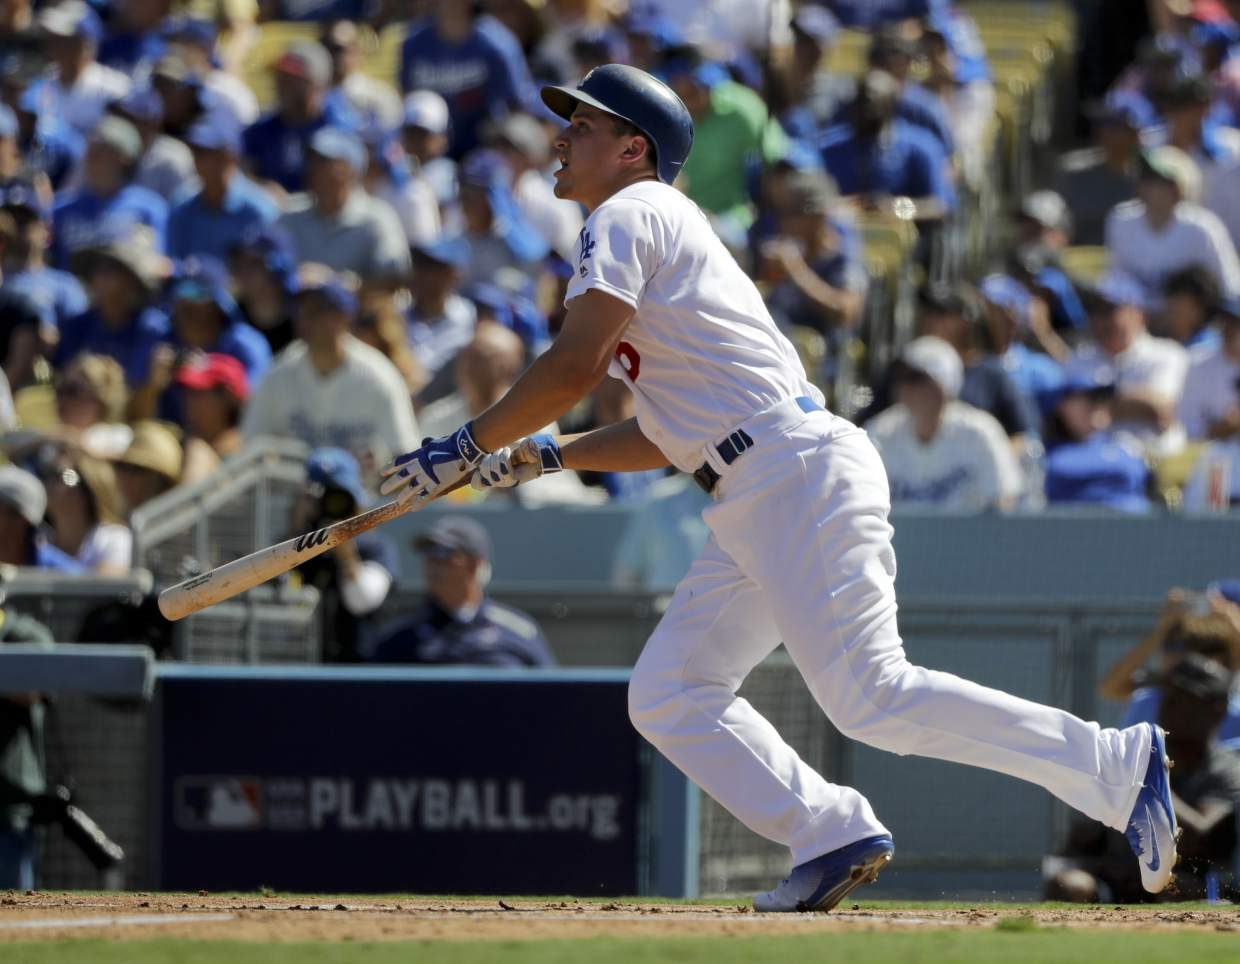 Los Angeles Dodgers' Corey Seager watches his RBI-double during the first inning in Game 3 of baseball's National League Division Series against the Washington Nationals in Los Angeles, Monday, Oct. 10, 2016. (AP Photo/Jae C. Hong)